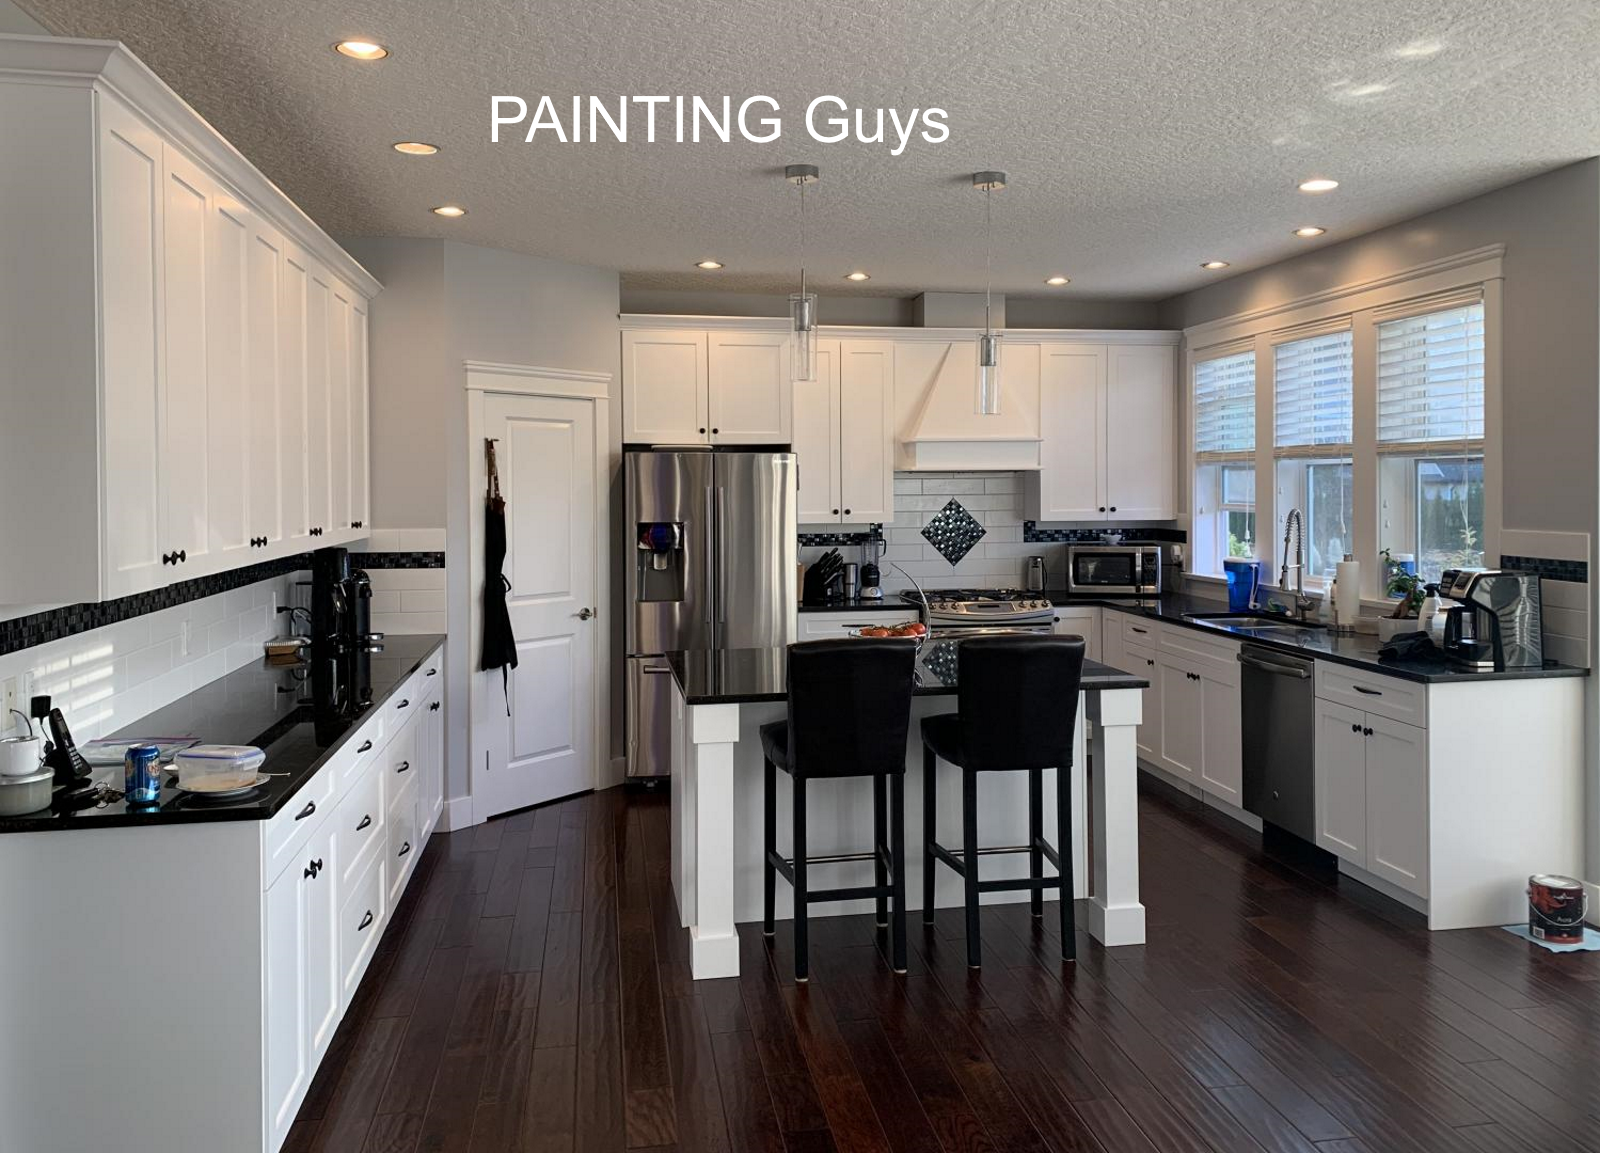 Mill Bay kitchen cabinet painting PAINTING Guys